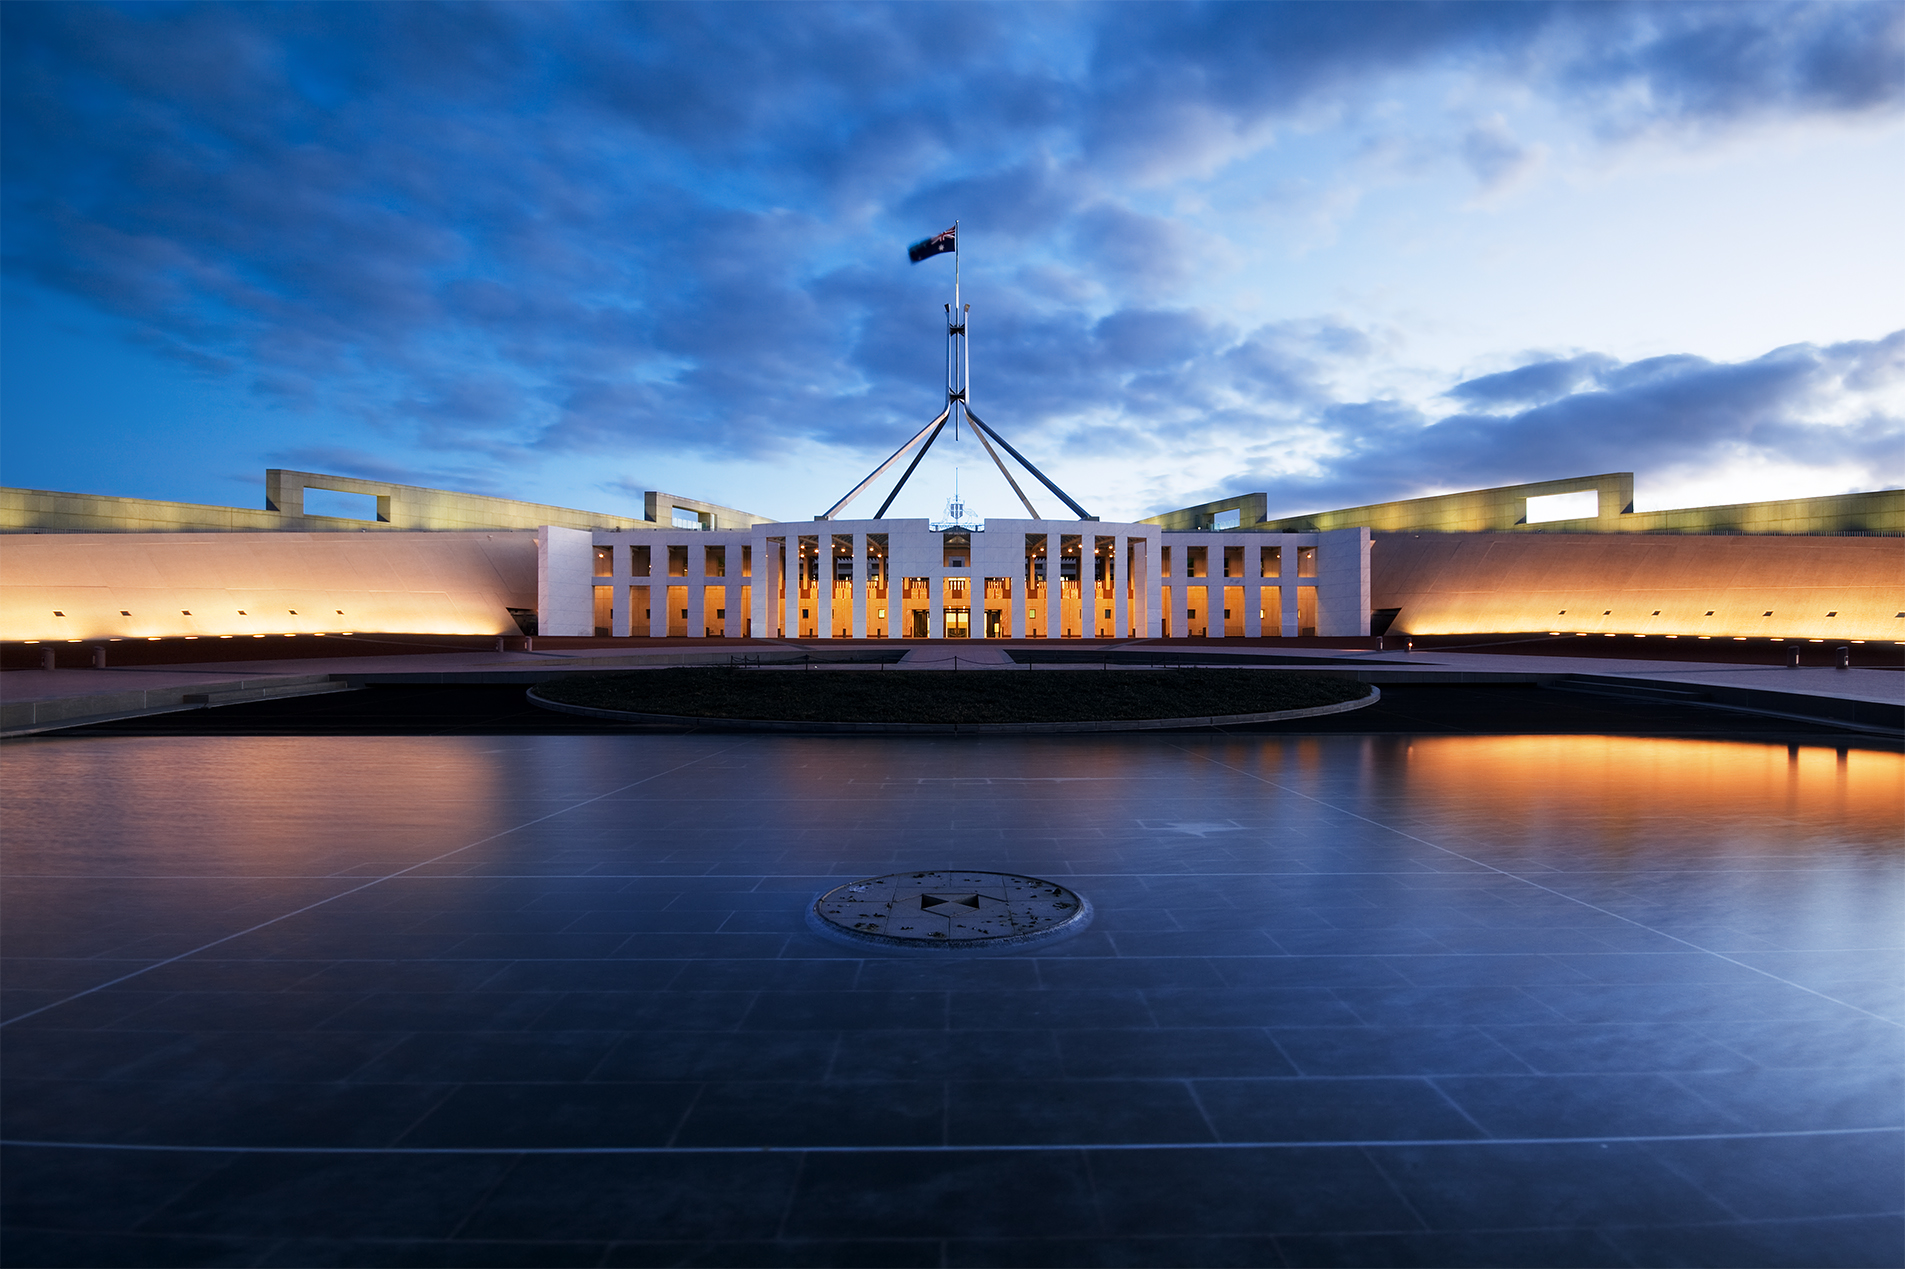 File:Parliament House Canberra NS.jpg - Wikipedia